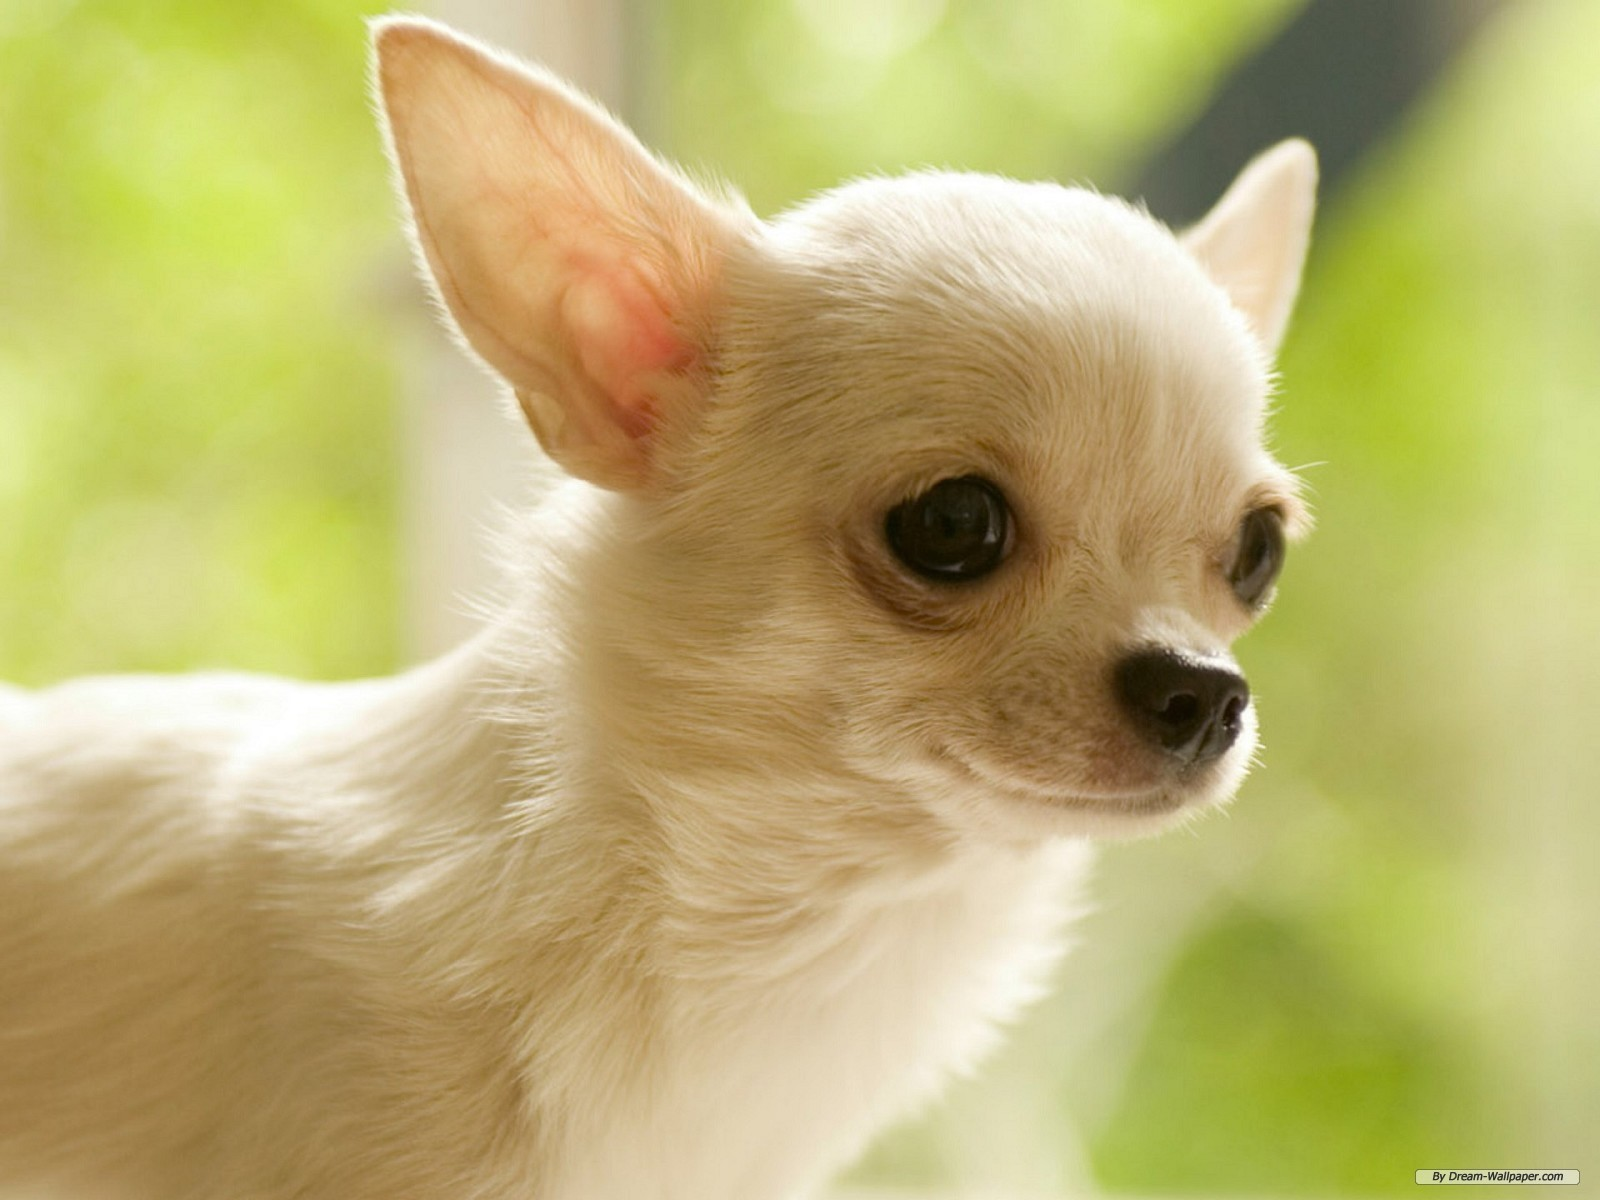 Gorgeous Chihuahua - Chihuahuas Wallpaper (16750789) - Fanpop fanclubs